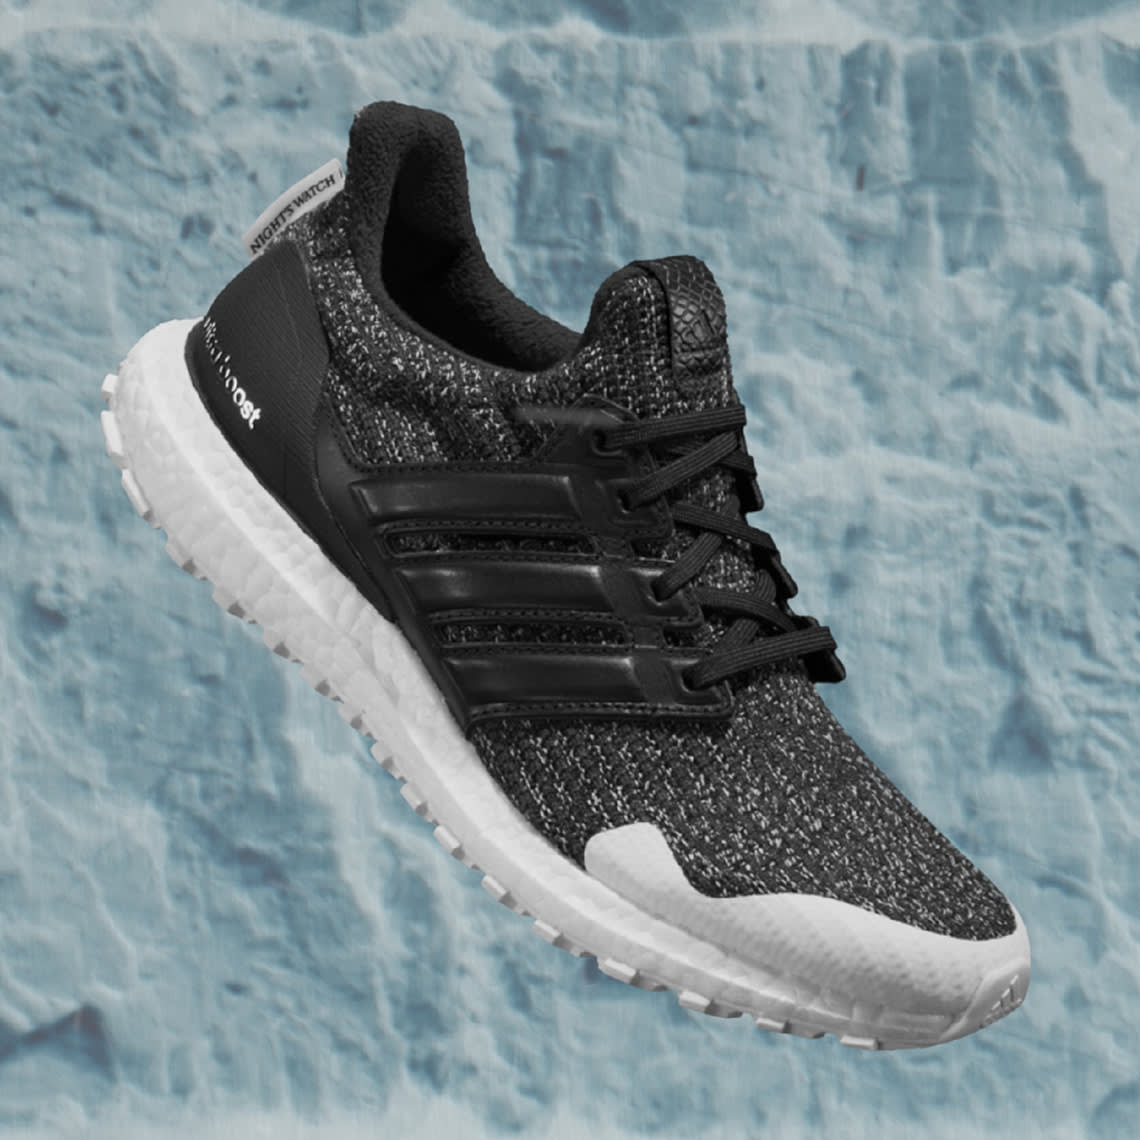 quality design c8efb 97fa9 Ultraboost x Game Of Thrones Shoes